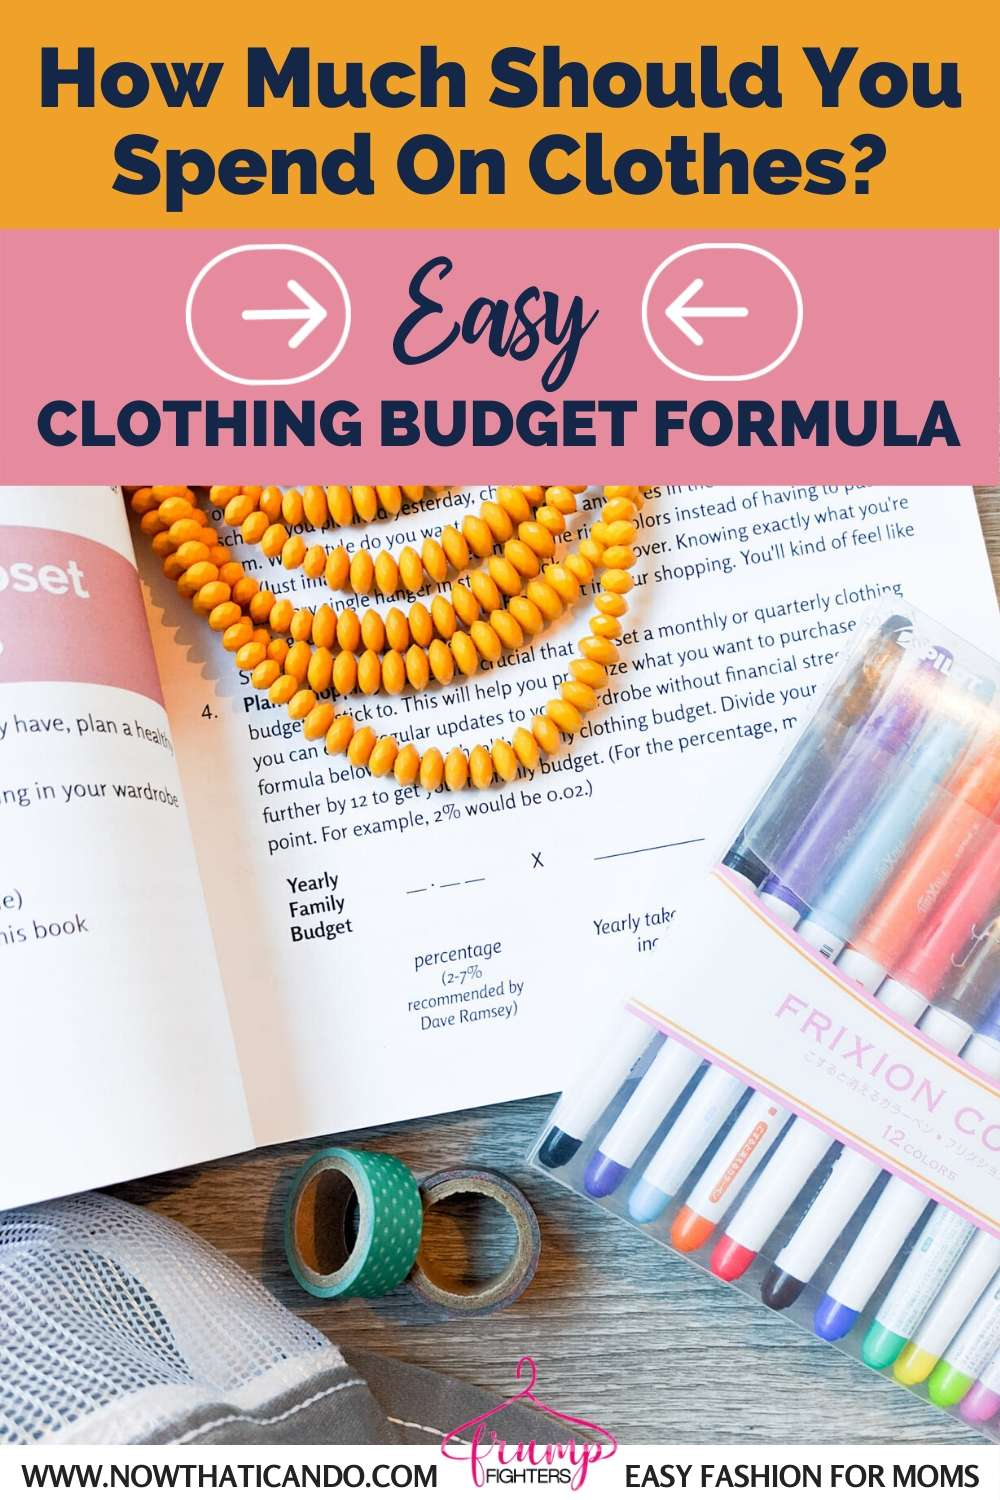 How to find healthy clothing budget to build a budget capsule wardrobe. Love this easy formula and all the tips on this post about making the most of your existing wardrobe to save money on clothes shopping.